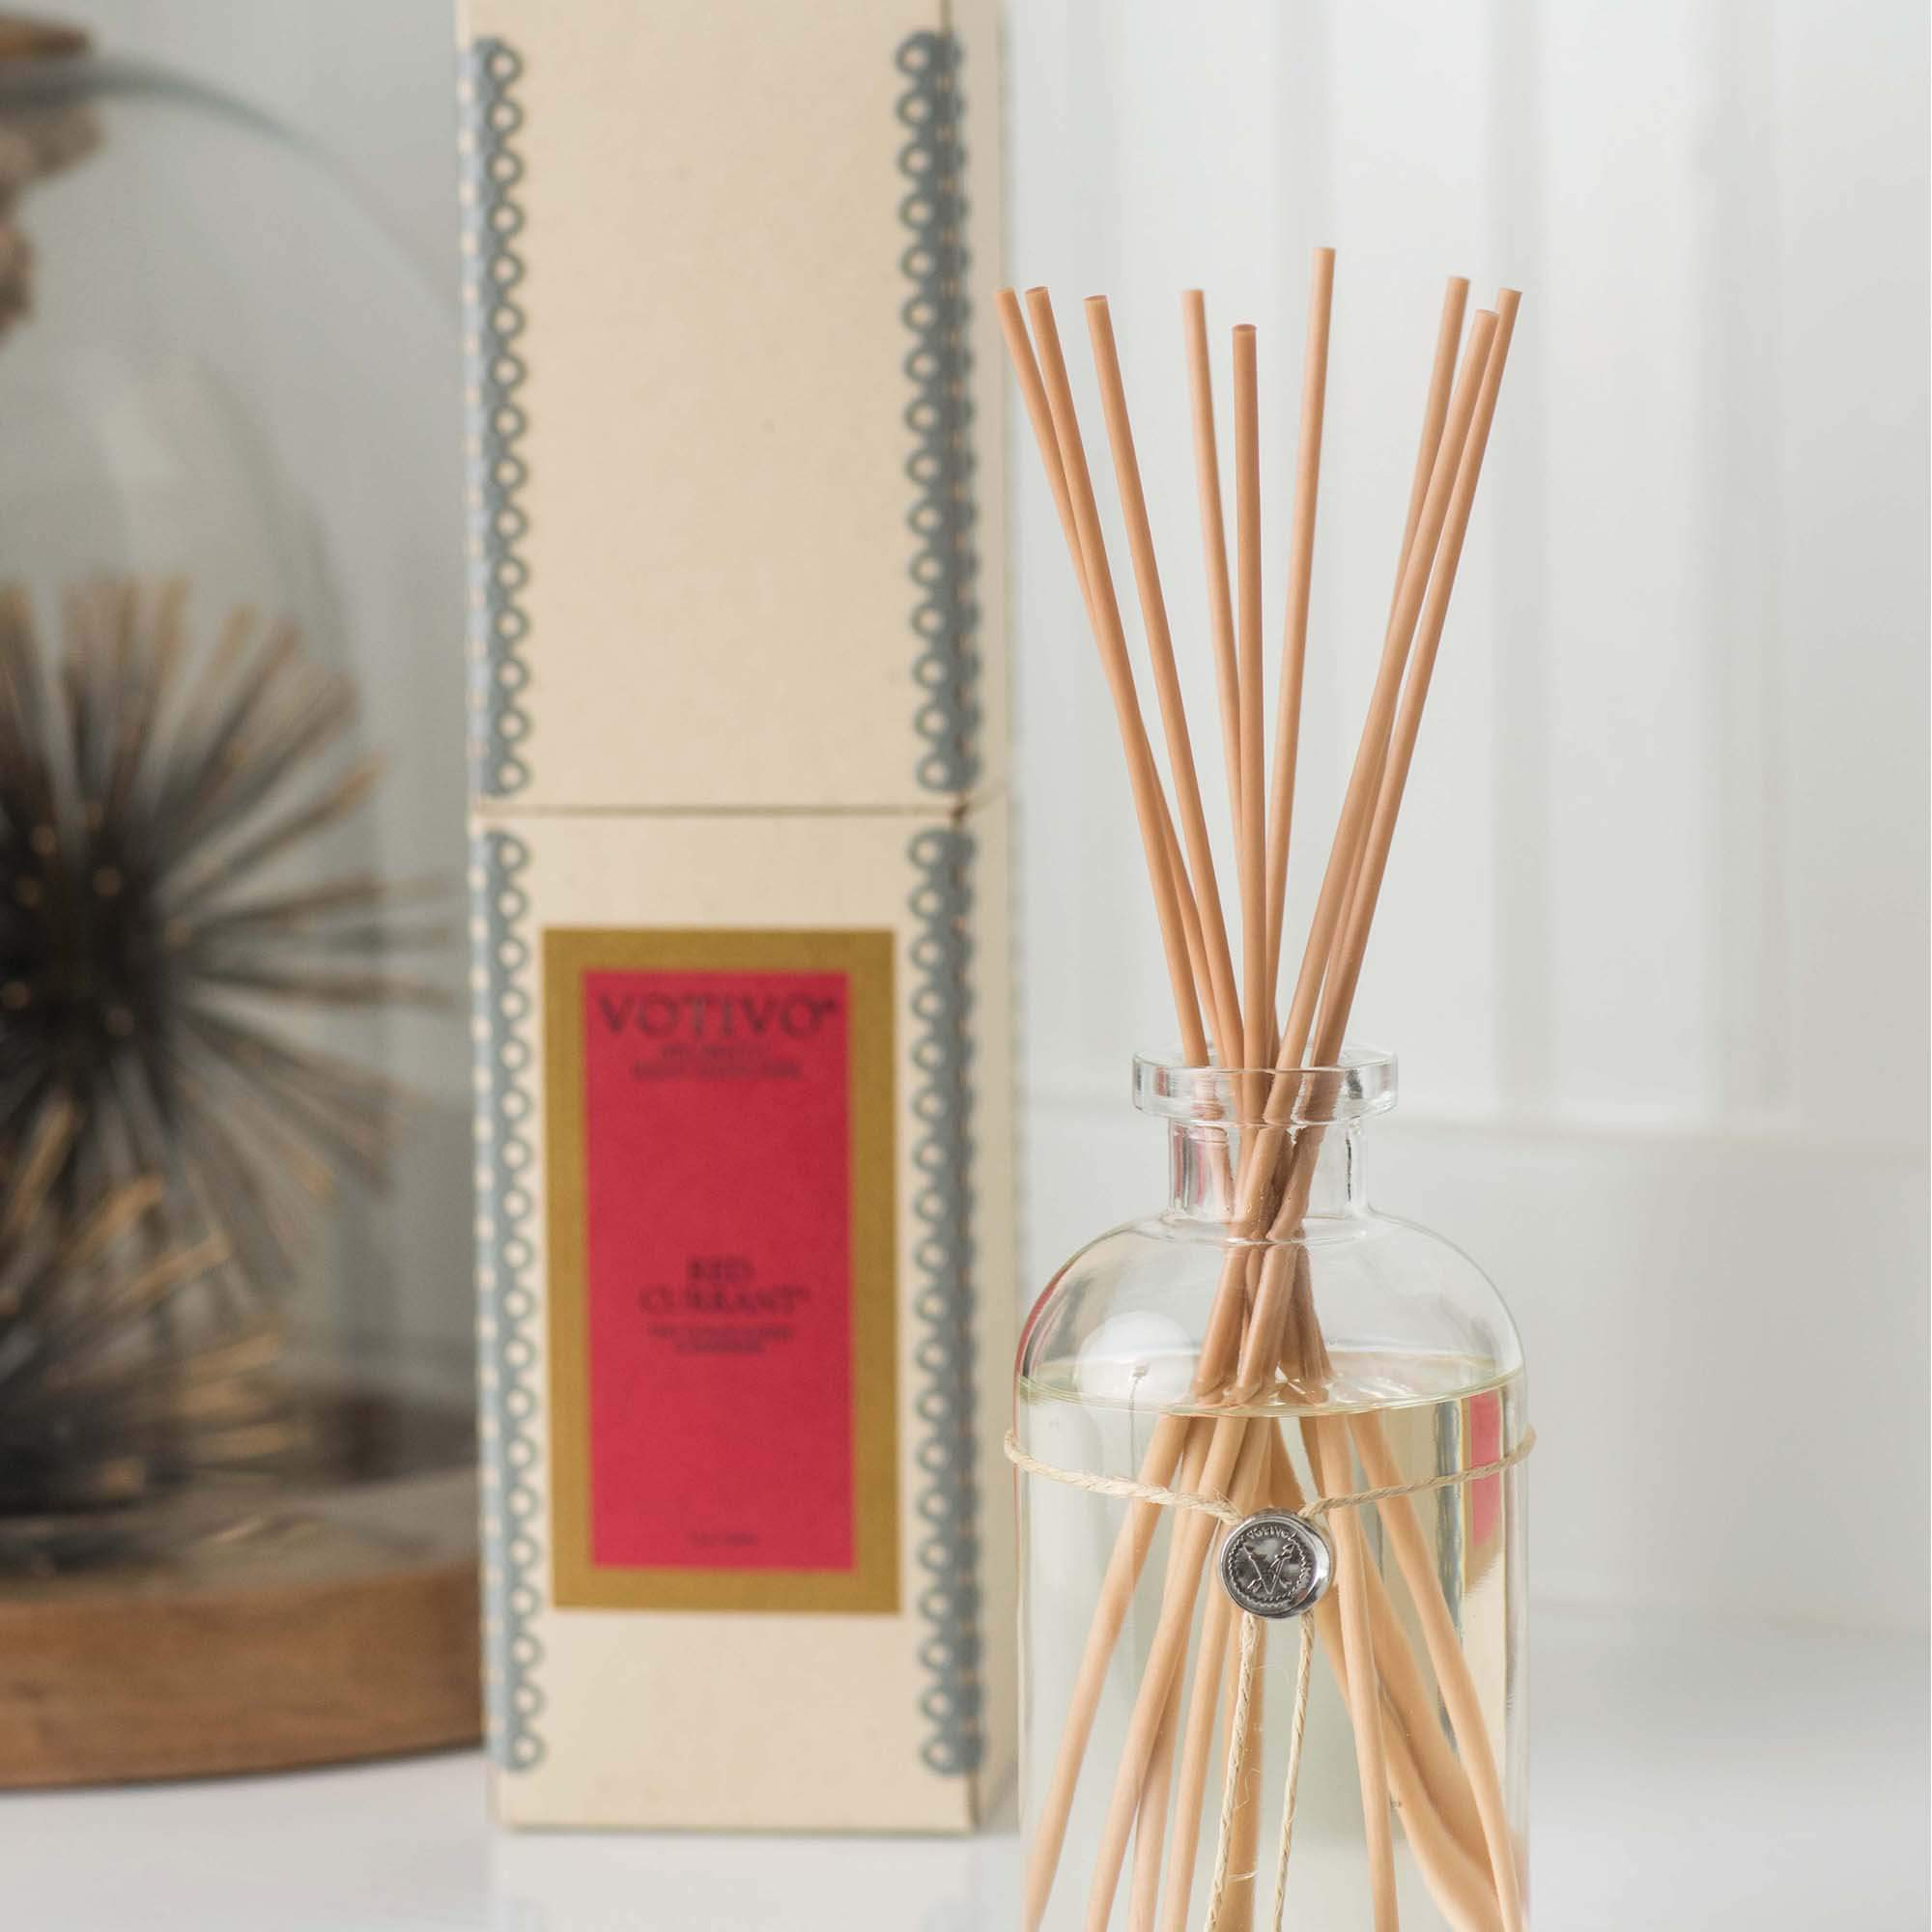 Votivo Aromatic Reed Diffuser - Red Currant by Votivo (Image #4)